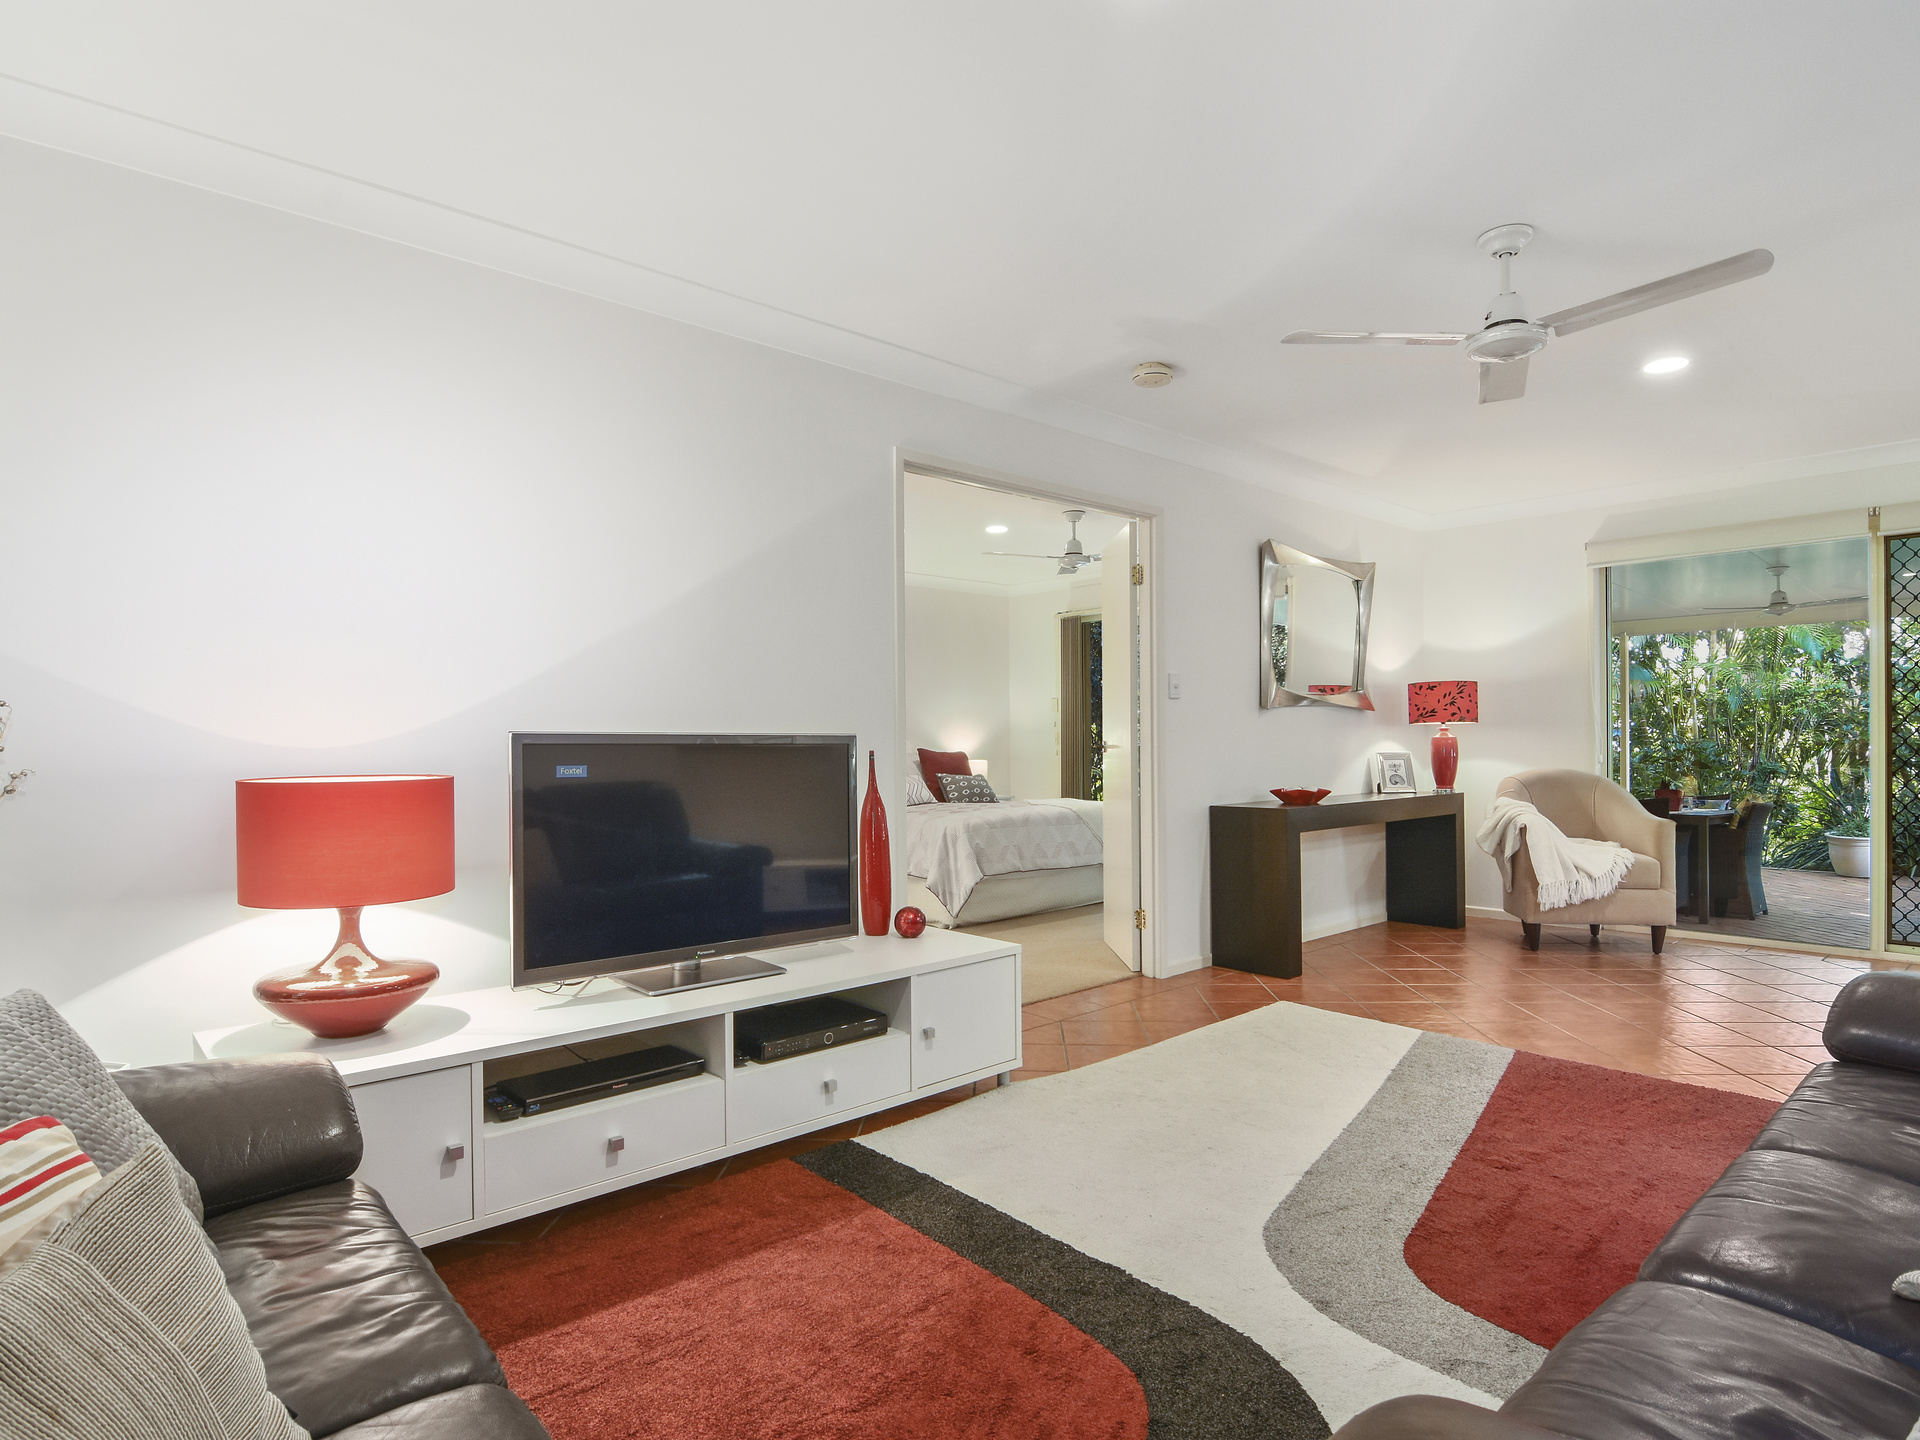 Real Estate   Gold Coast   Chevron Realty   003 Open2view Id518268 3 Action Place Upper Coomera